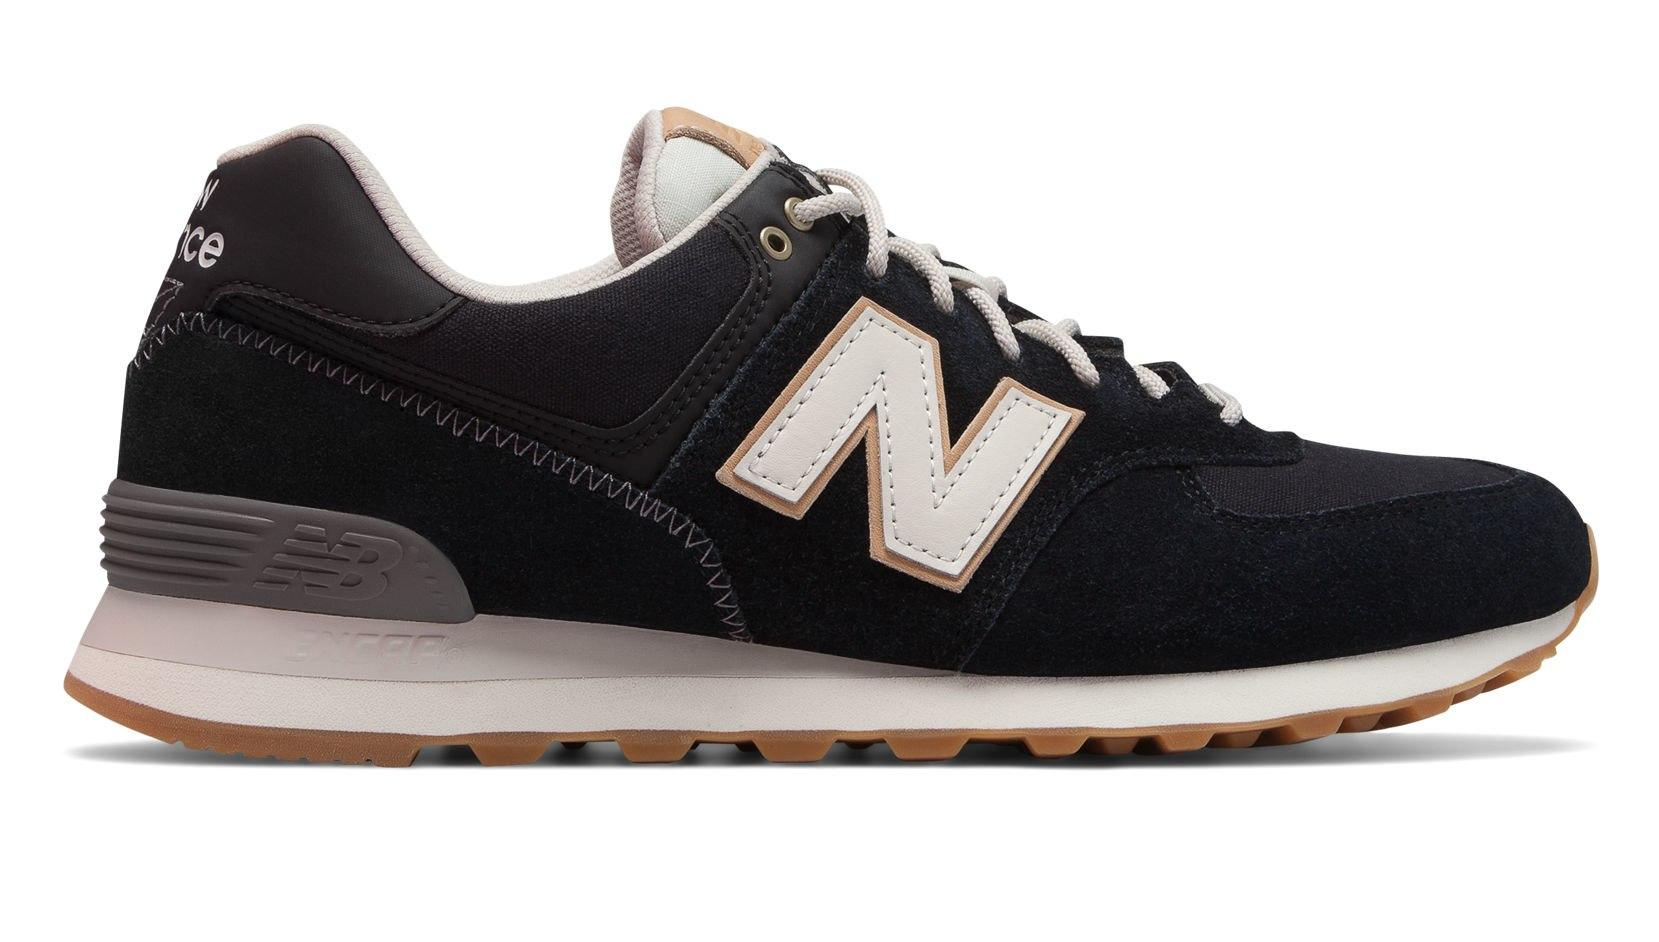 on sale 109bf 50708 Comparison of Skechers Malaysia and New Balance Sports ...